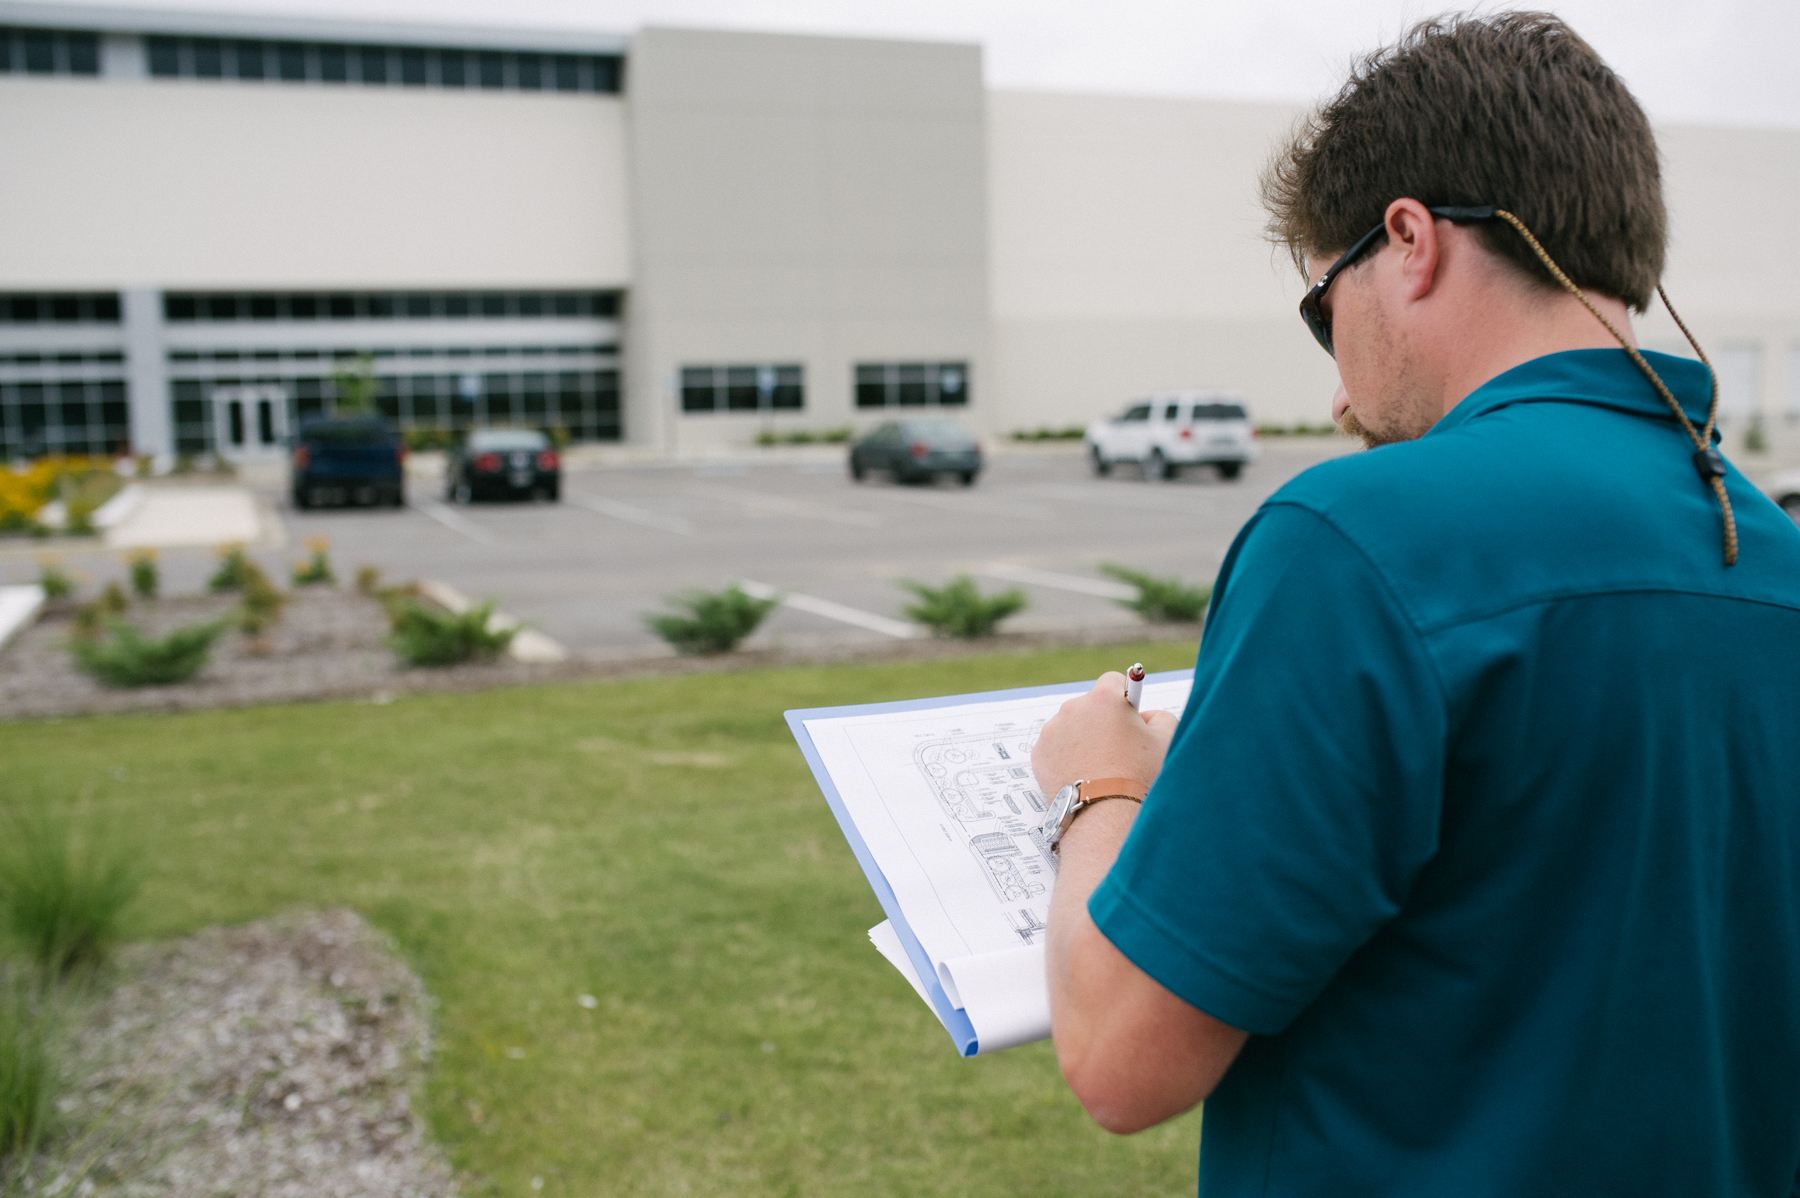 Landscaping zccount manager drawing up detailed plans